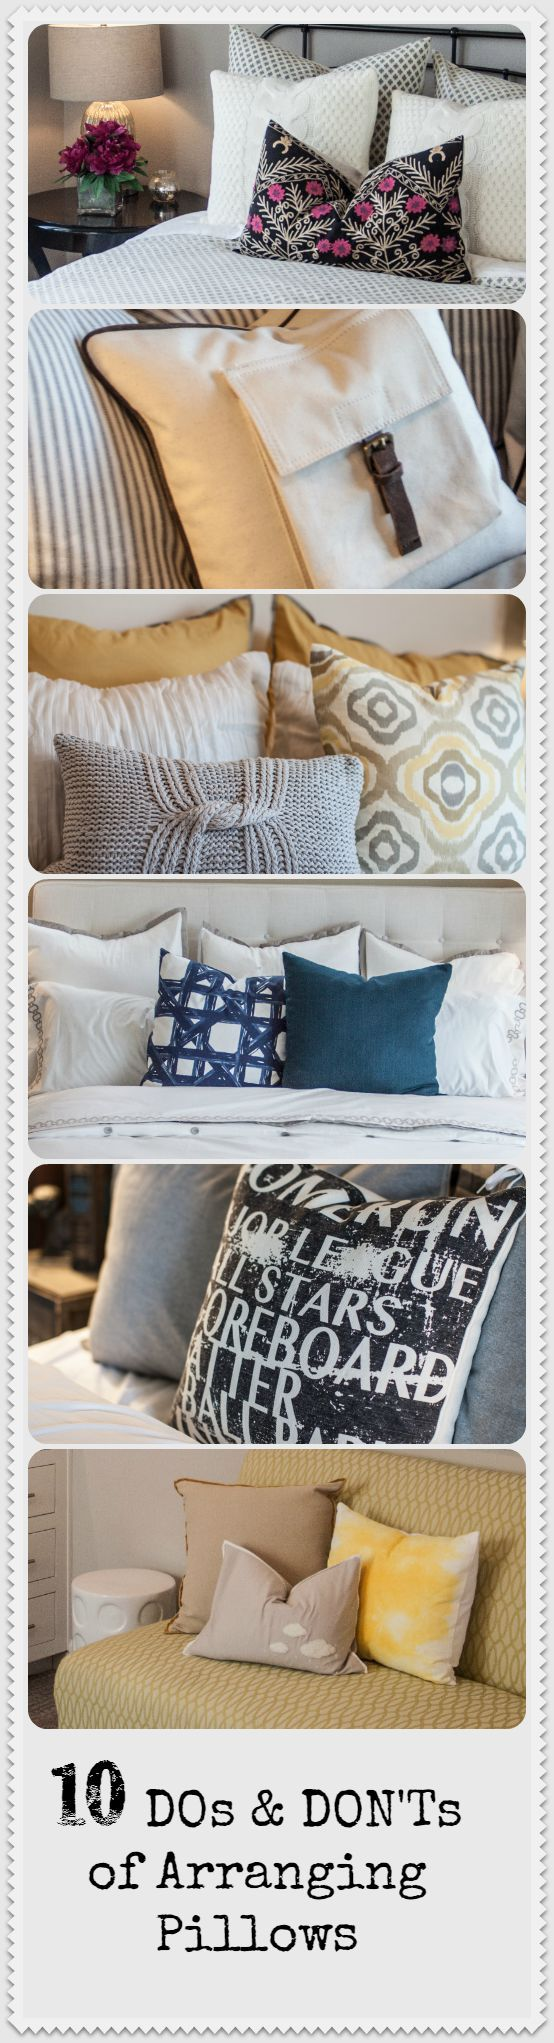 Here are some tips on some of the big DOs and DON'Ts of arranging pillows on sofas, beds and more! Click on the slideshow below to read the post: